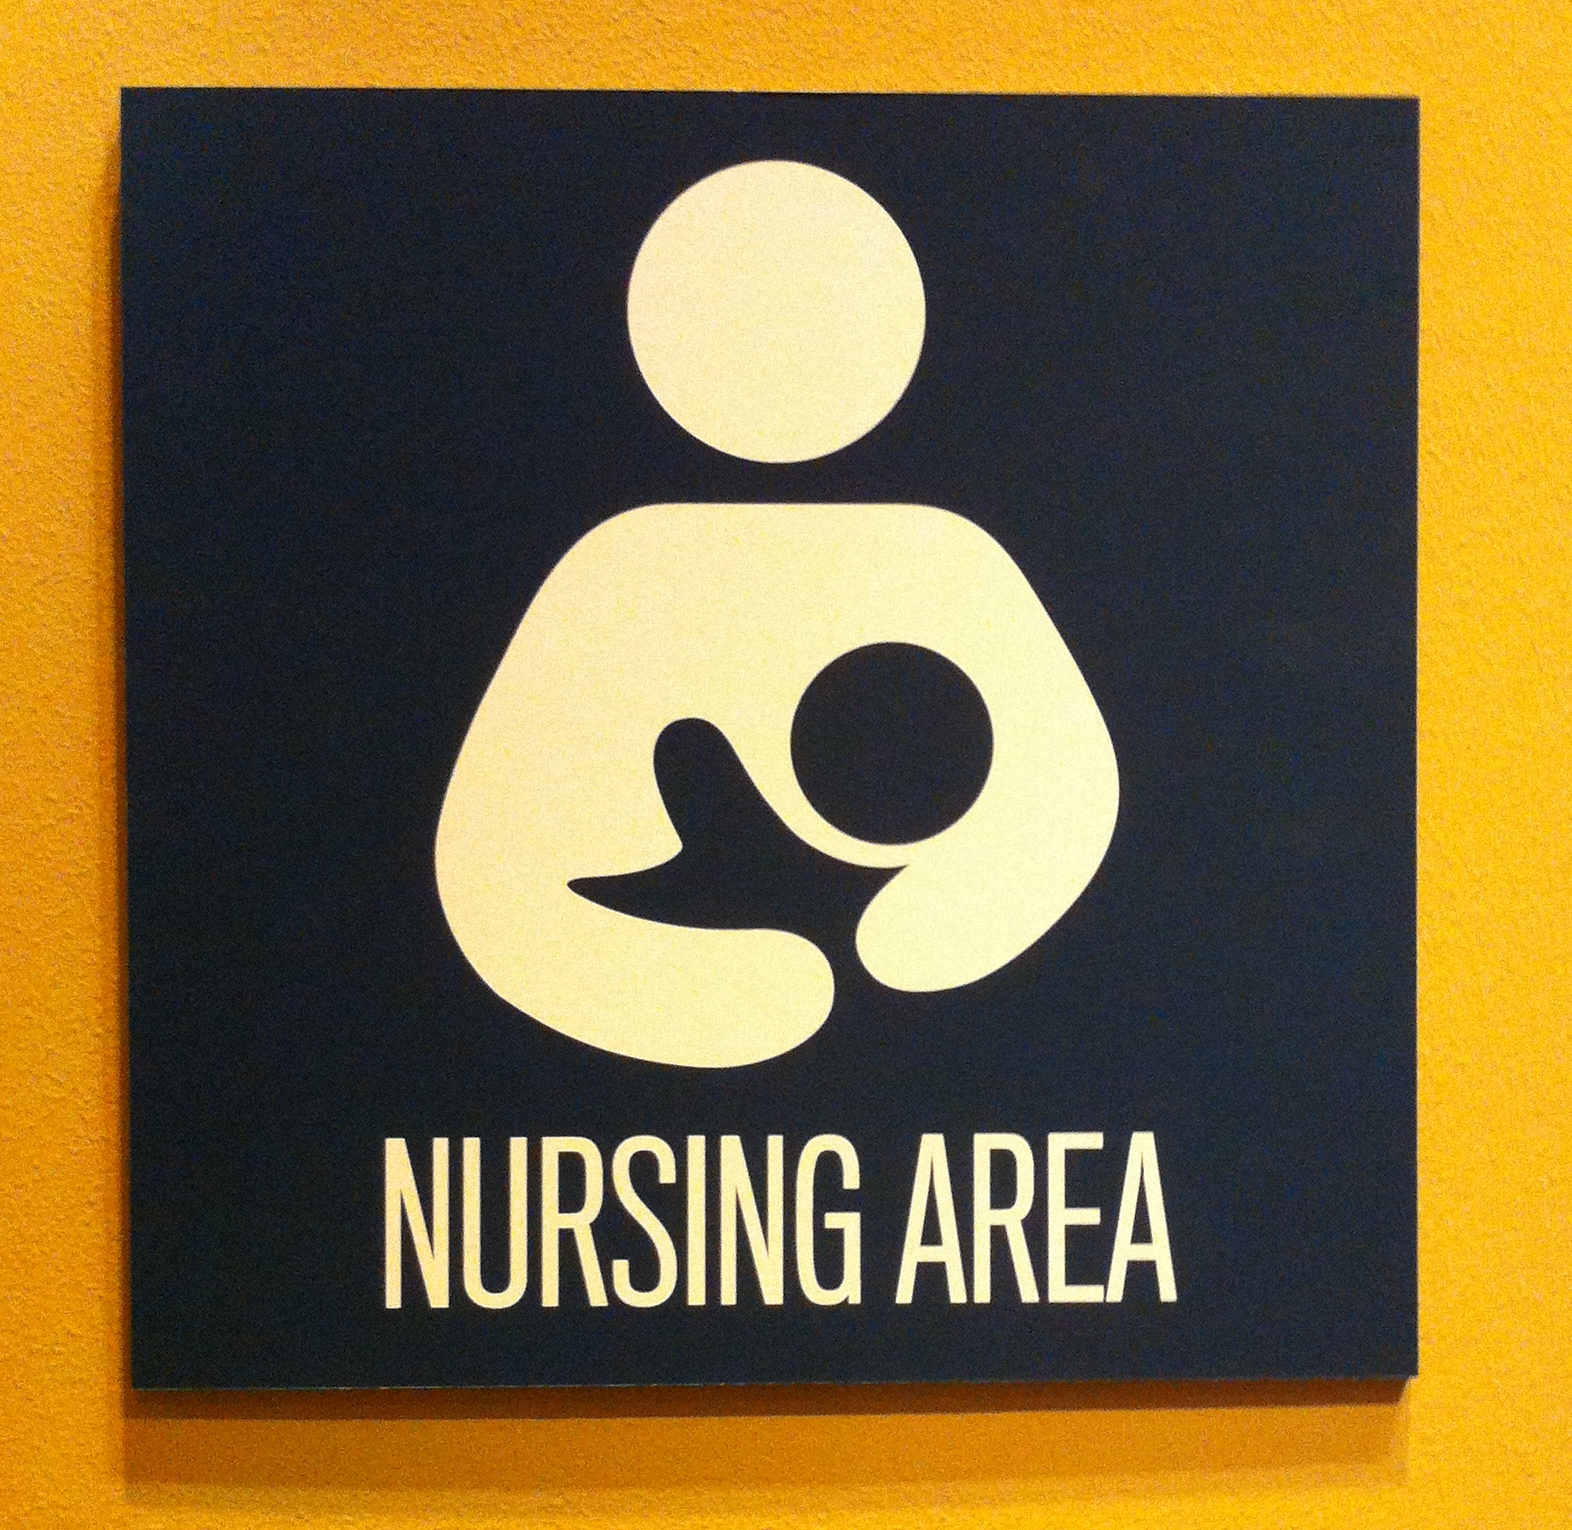 Nursing city college of ny subjects